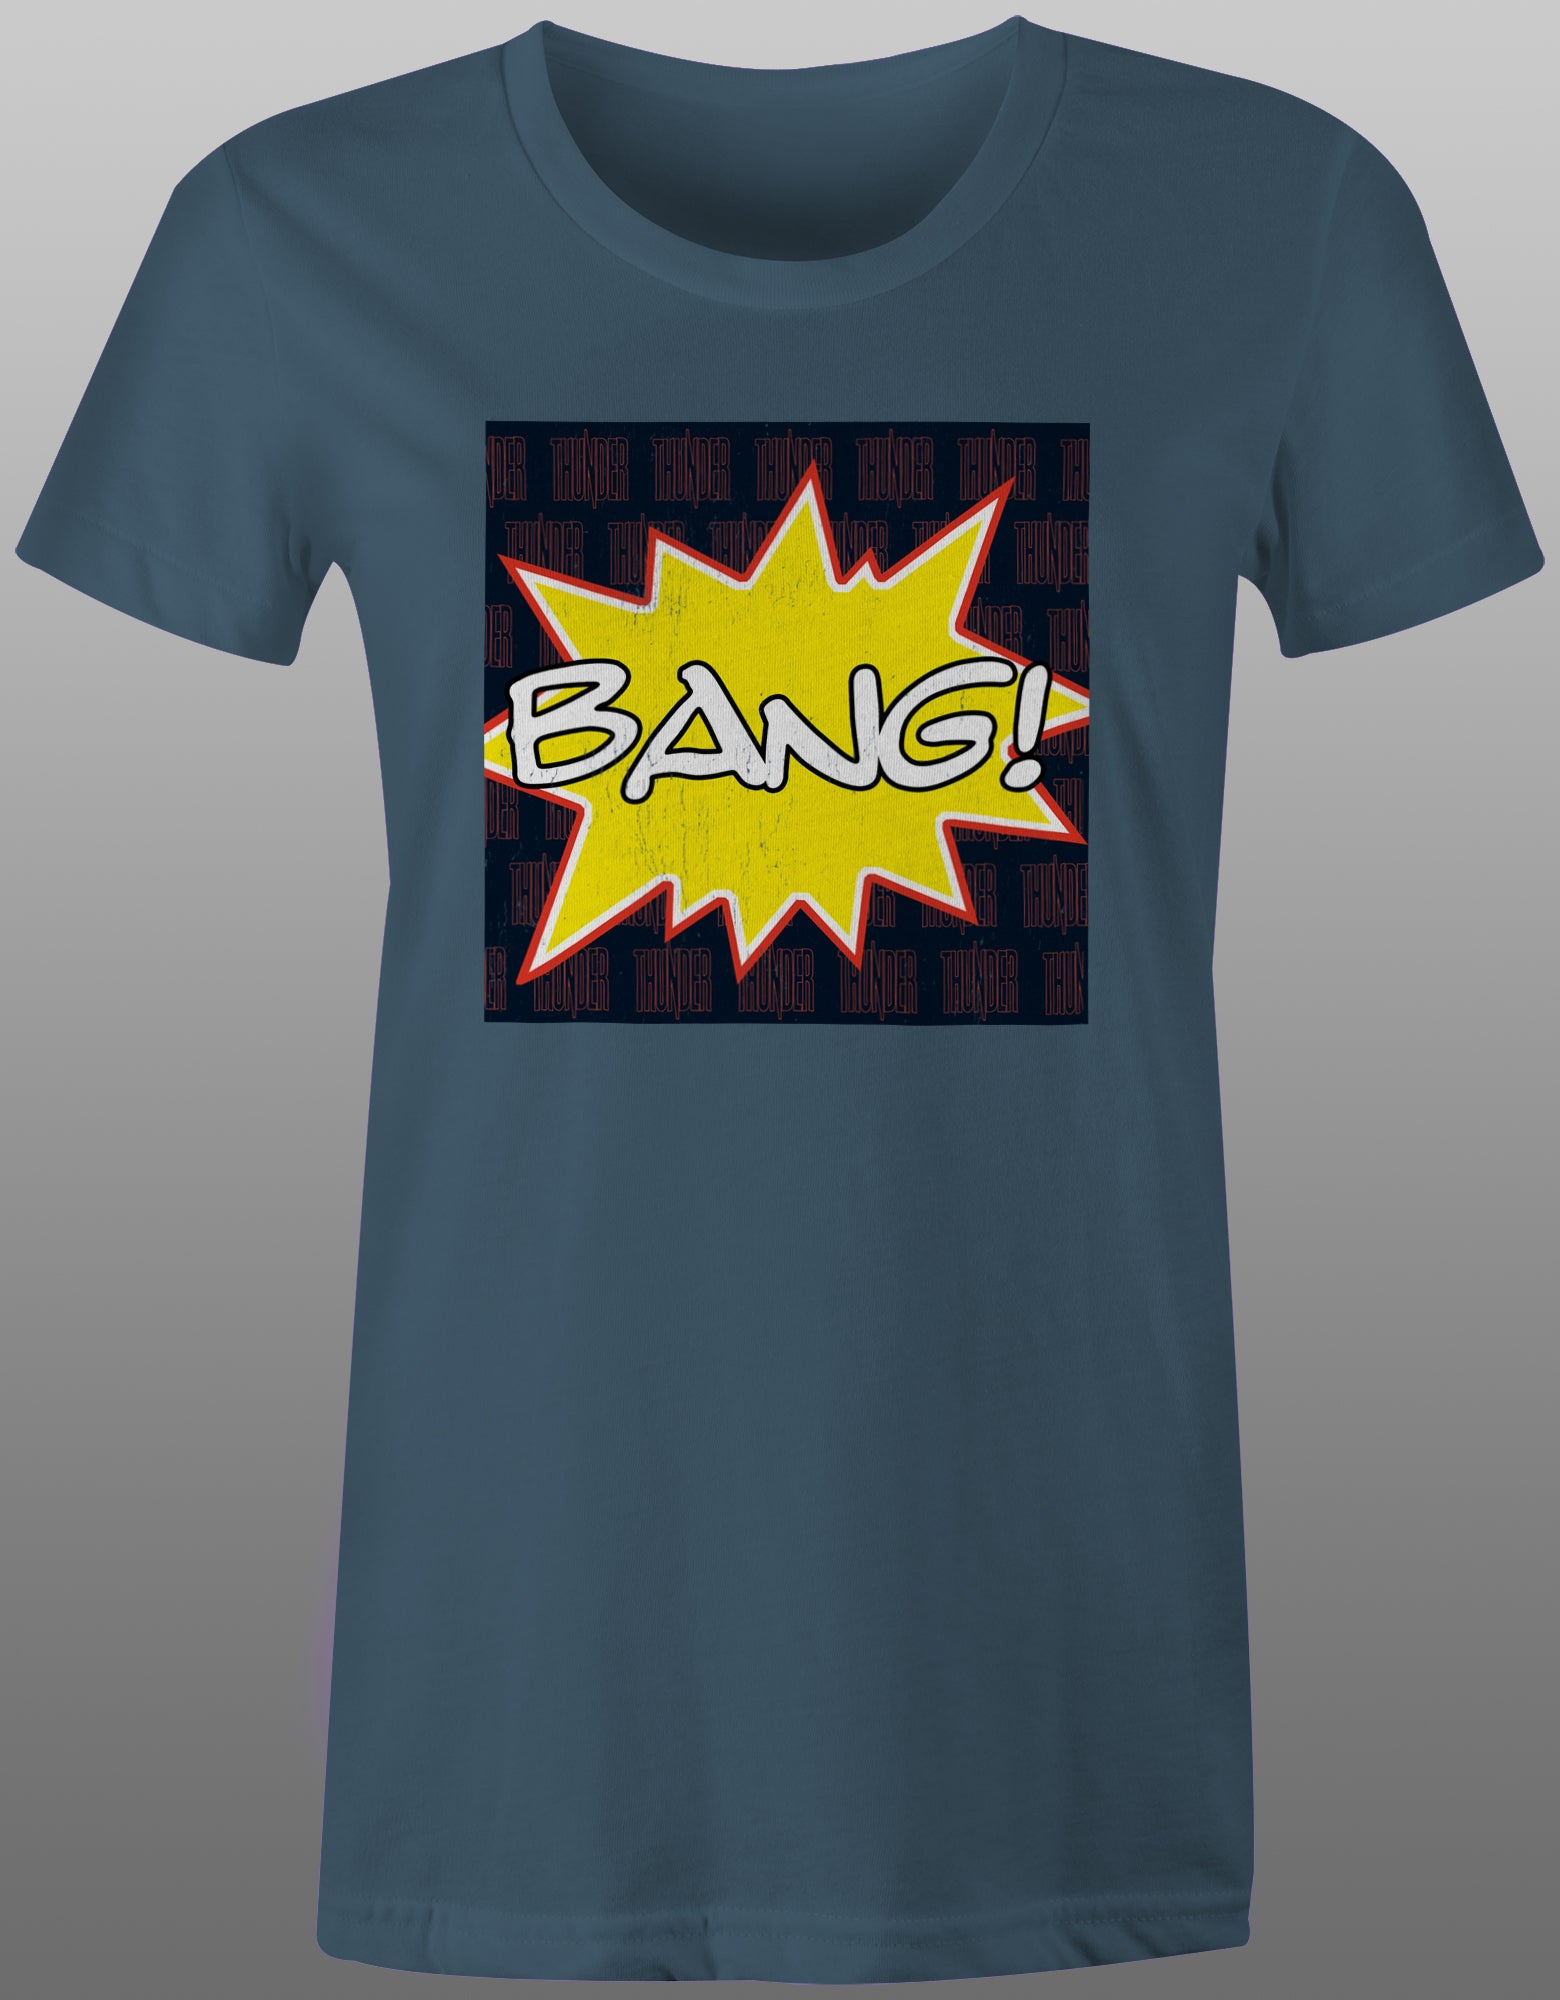 2008 BANG Tee - Ladies